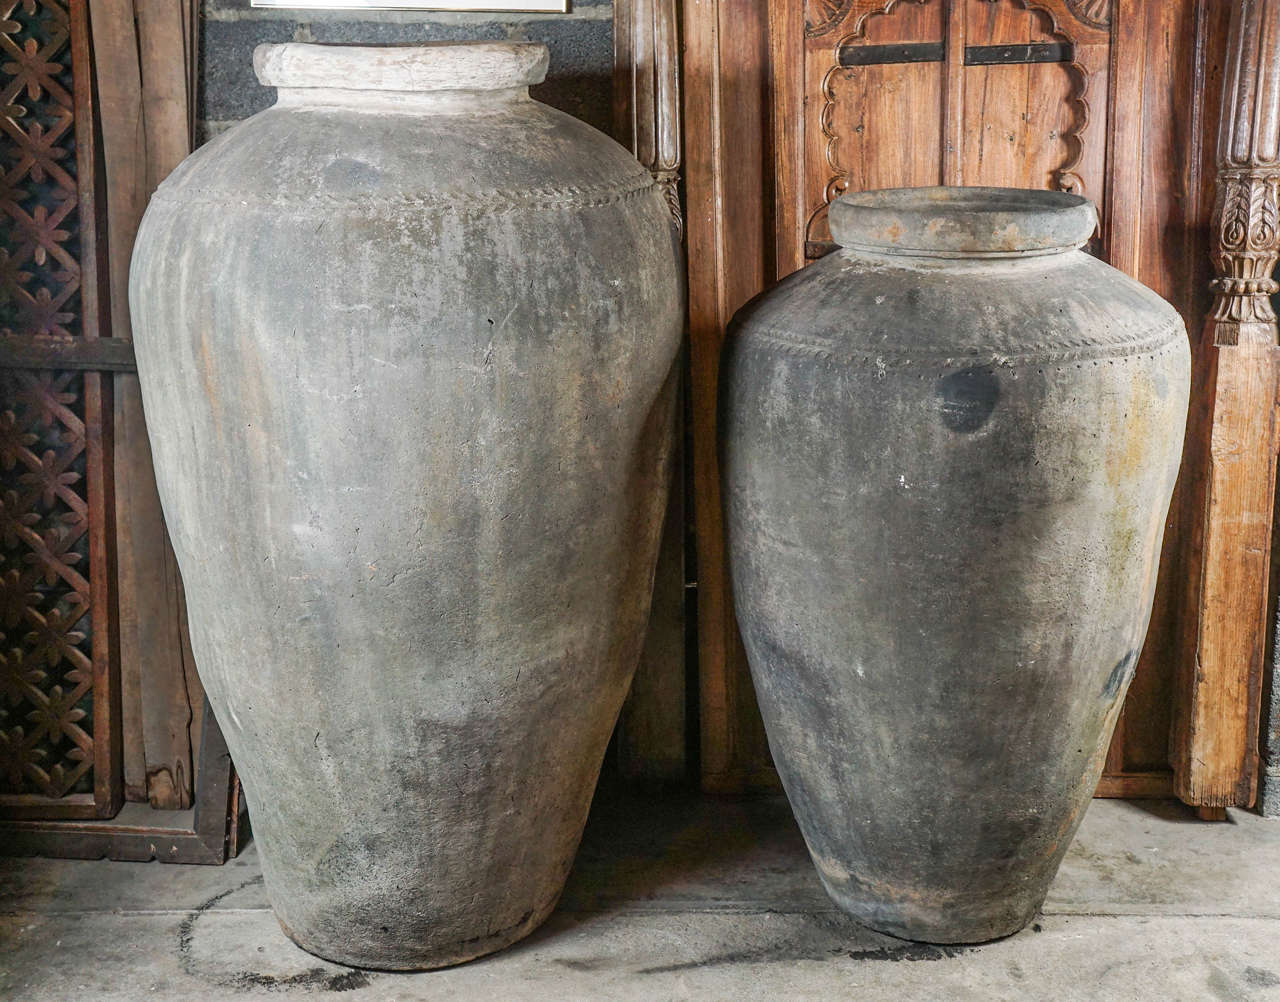 Monumental clay pots from Northern India, can be used as a garden sculptures.